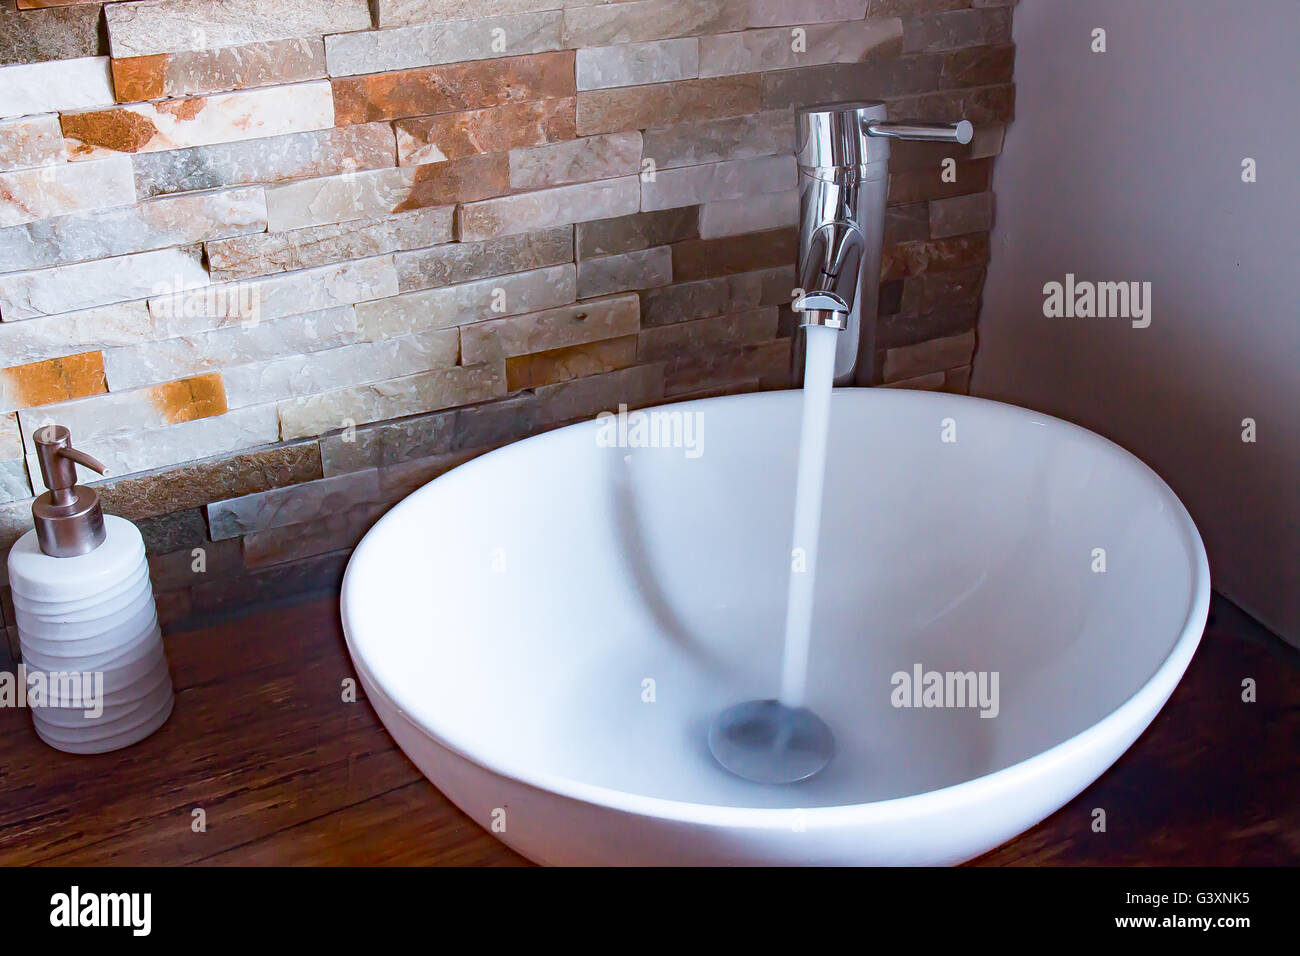 Natural Stone Tiles Stock Photos & Natural Stone Tiles Stock Images ...